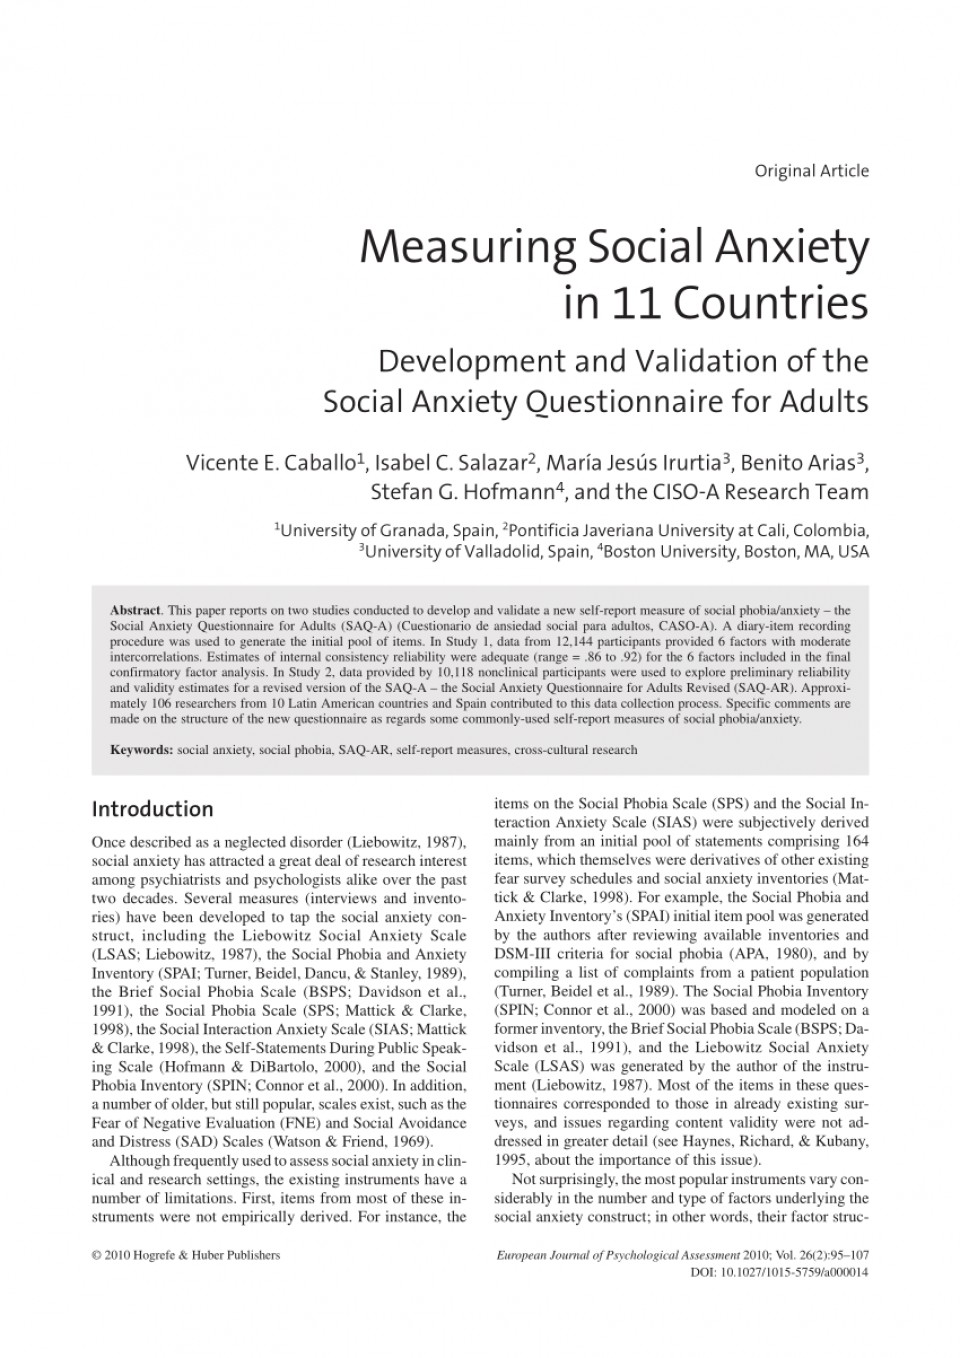 007 Psychology Research Paper On Social Anxiety Disorder Staggering 960